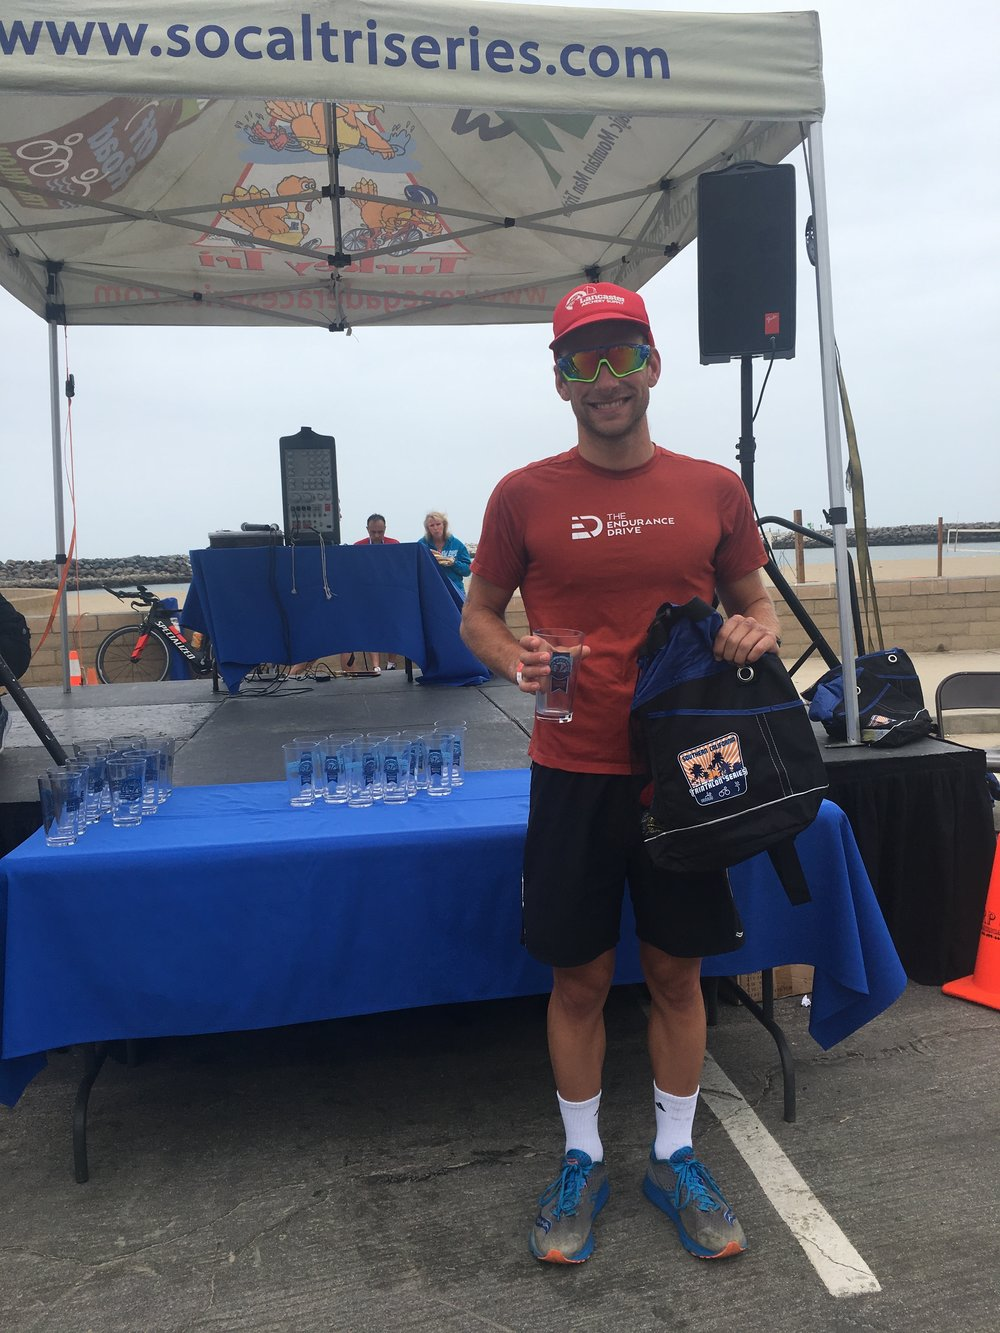 Eliot Scymanski - 1st place overall - Ventura Breath of Life Olympic Triathlon - 2018 - Ventura, CA